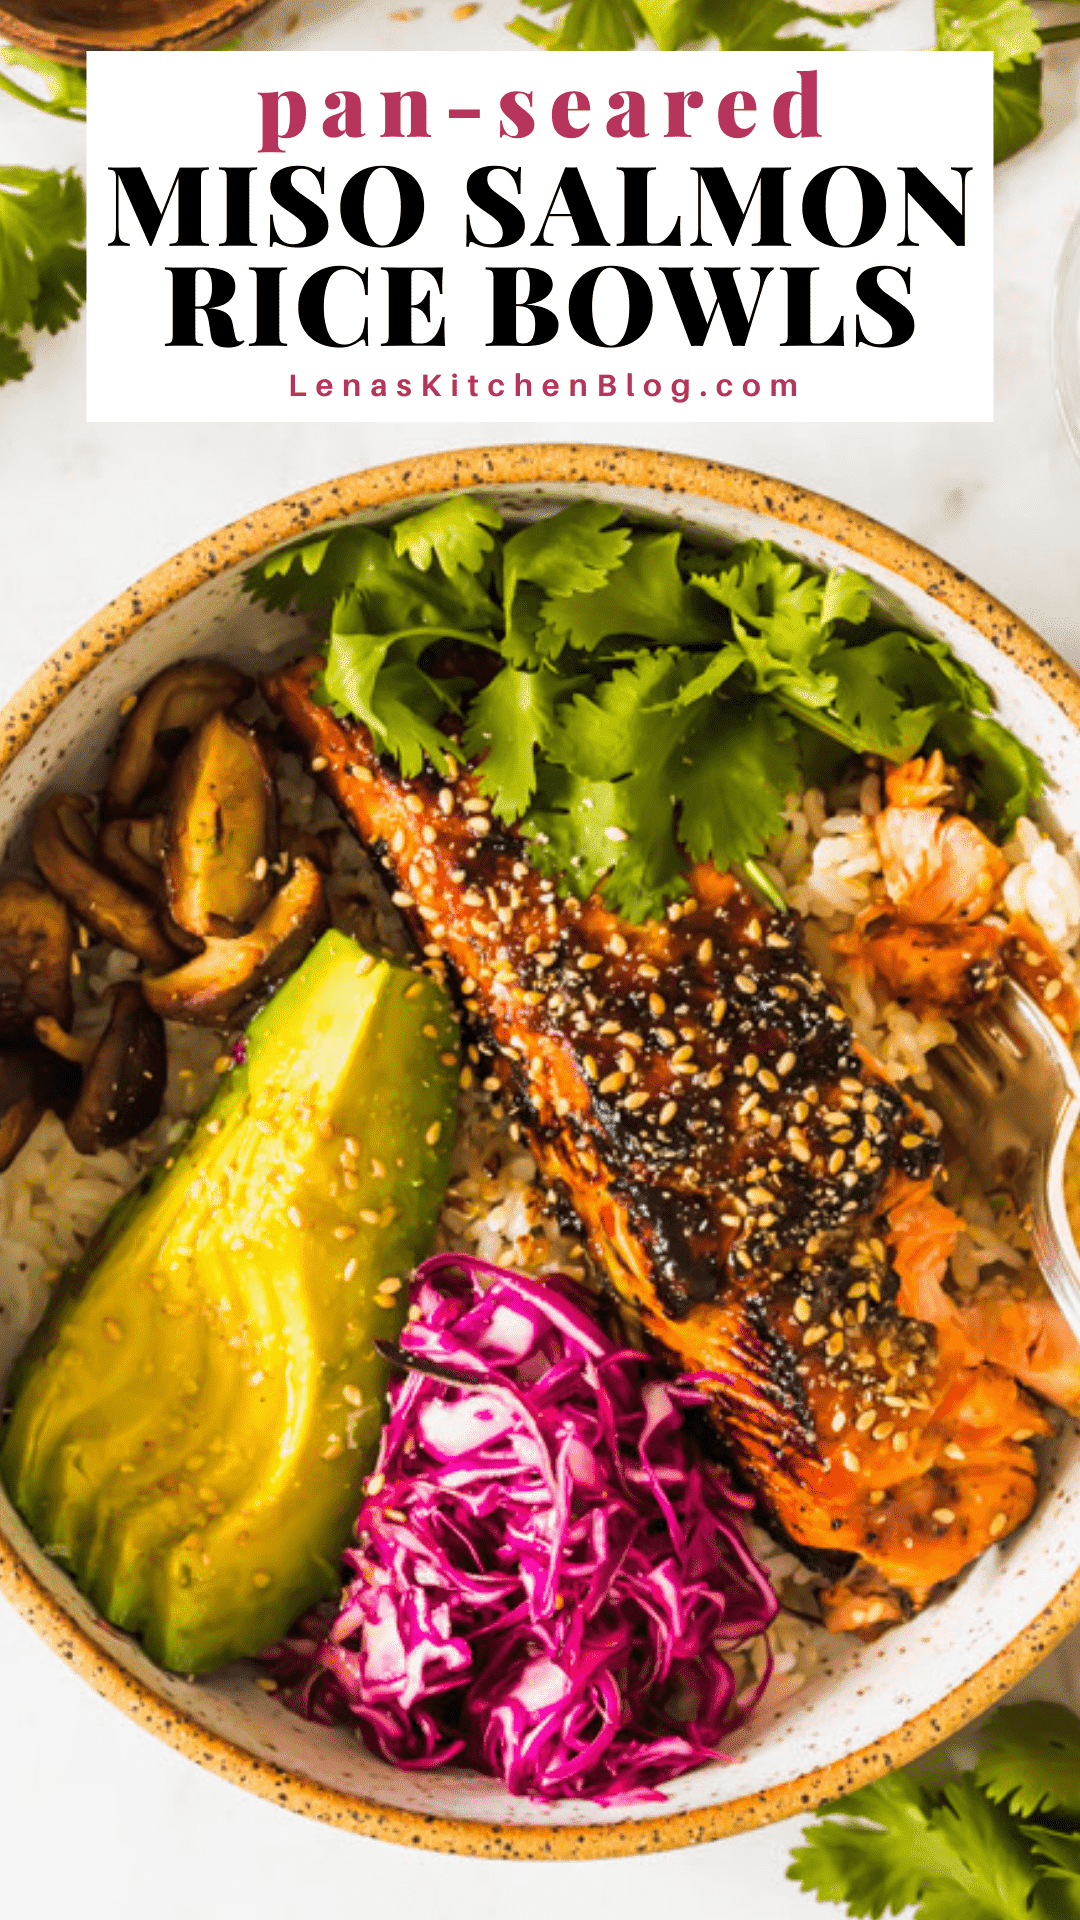 pinterest image of cooked salmon filet in a white bowl with rice, avocado, purple cabbage, mushrooms, and green cilantro.